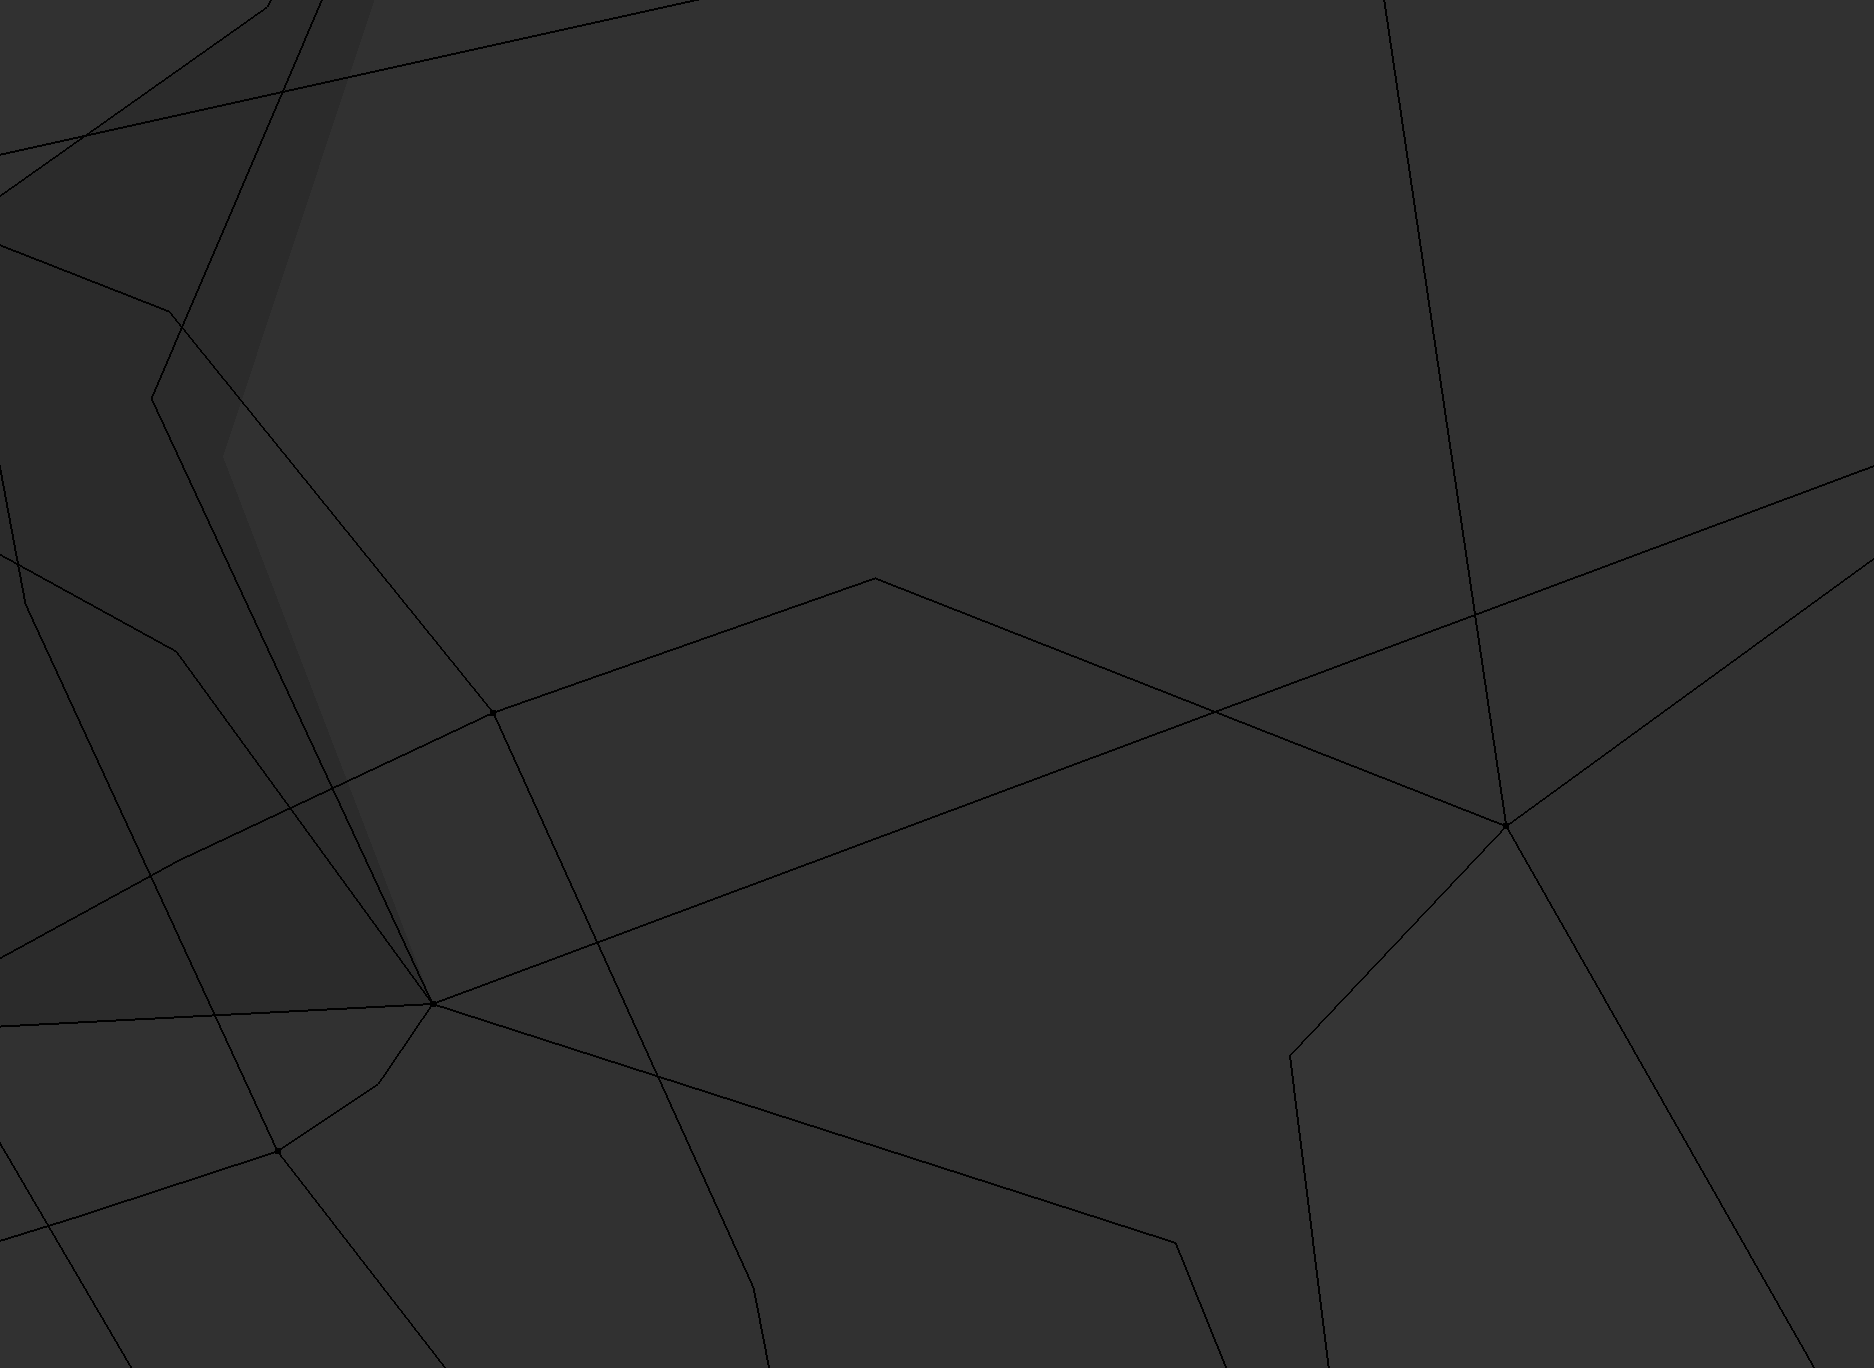 Weird Edges With No Vertices